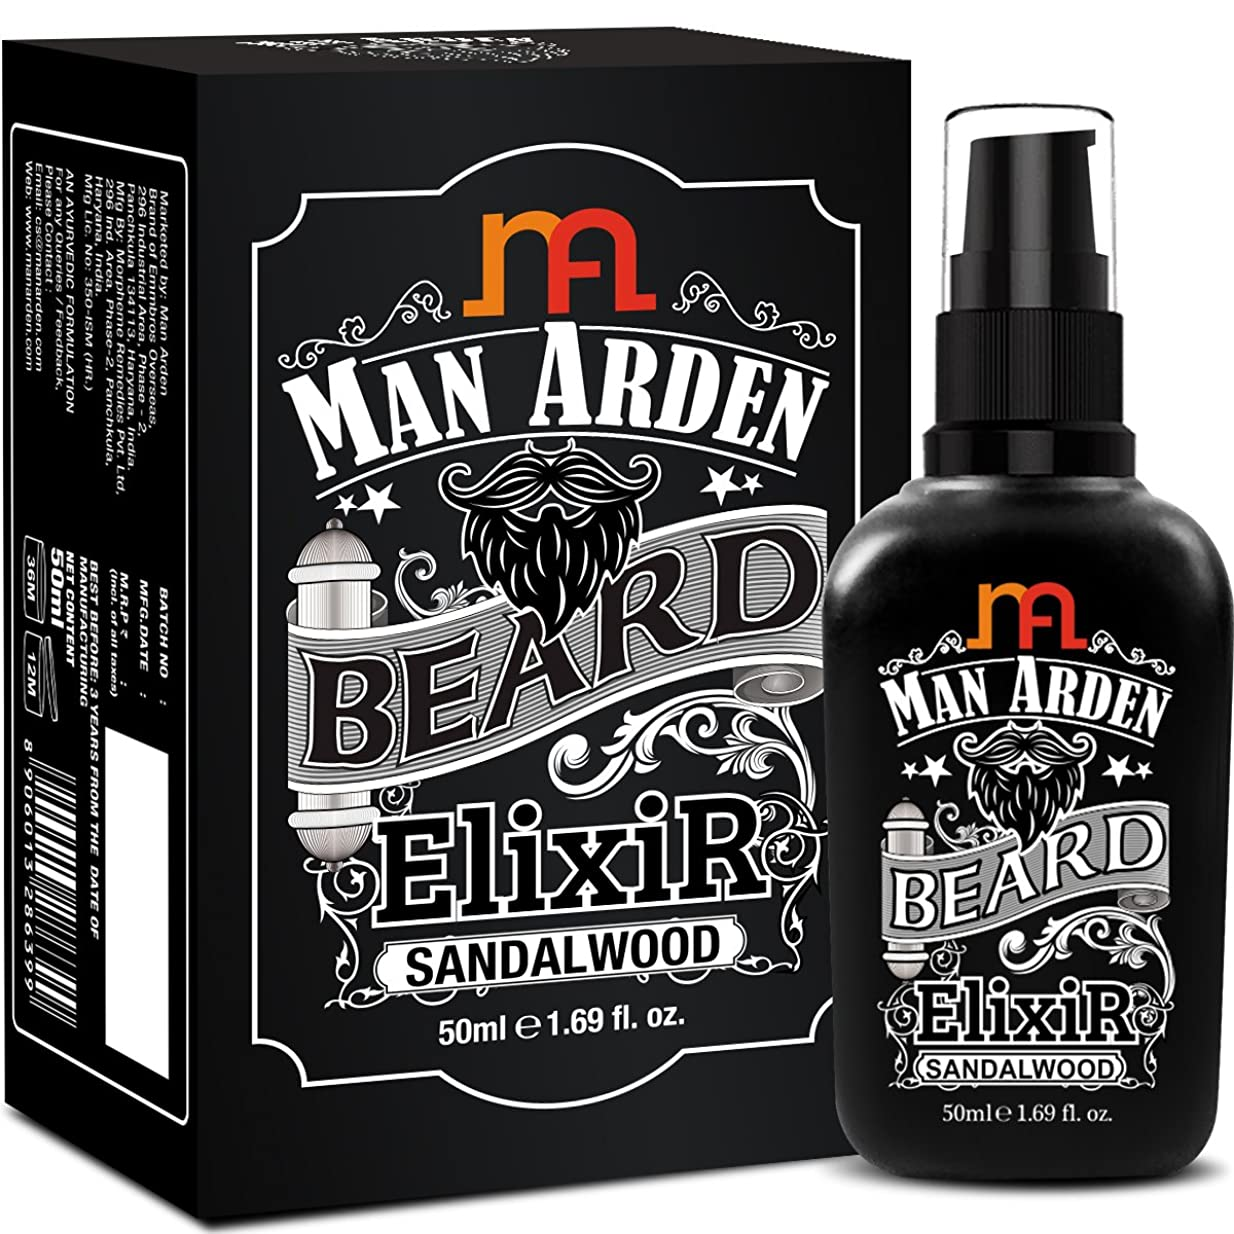 スクラップブックナラーバー草Man Arden Beard Elixir Oil 50ml (Sandalwood) - 7 Oils Blend For Beard Repair, Growth & Nourishment8906013286399